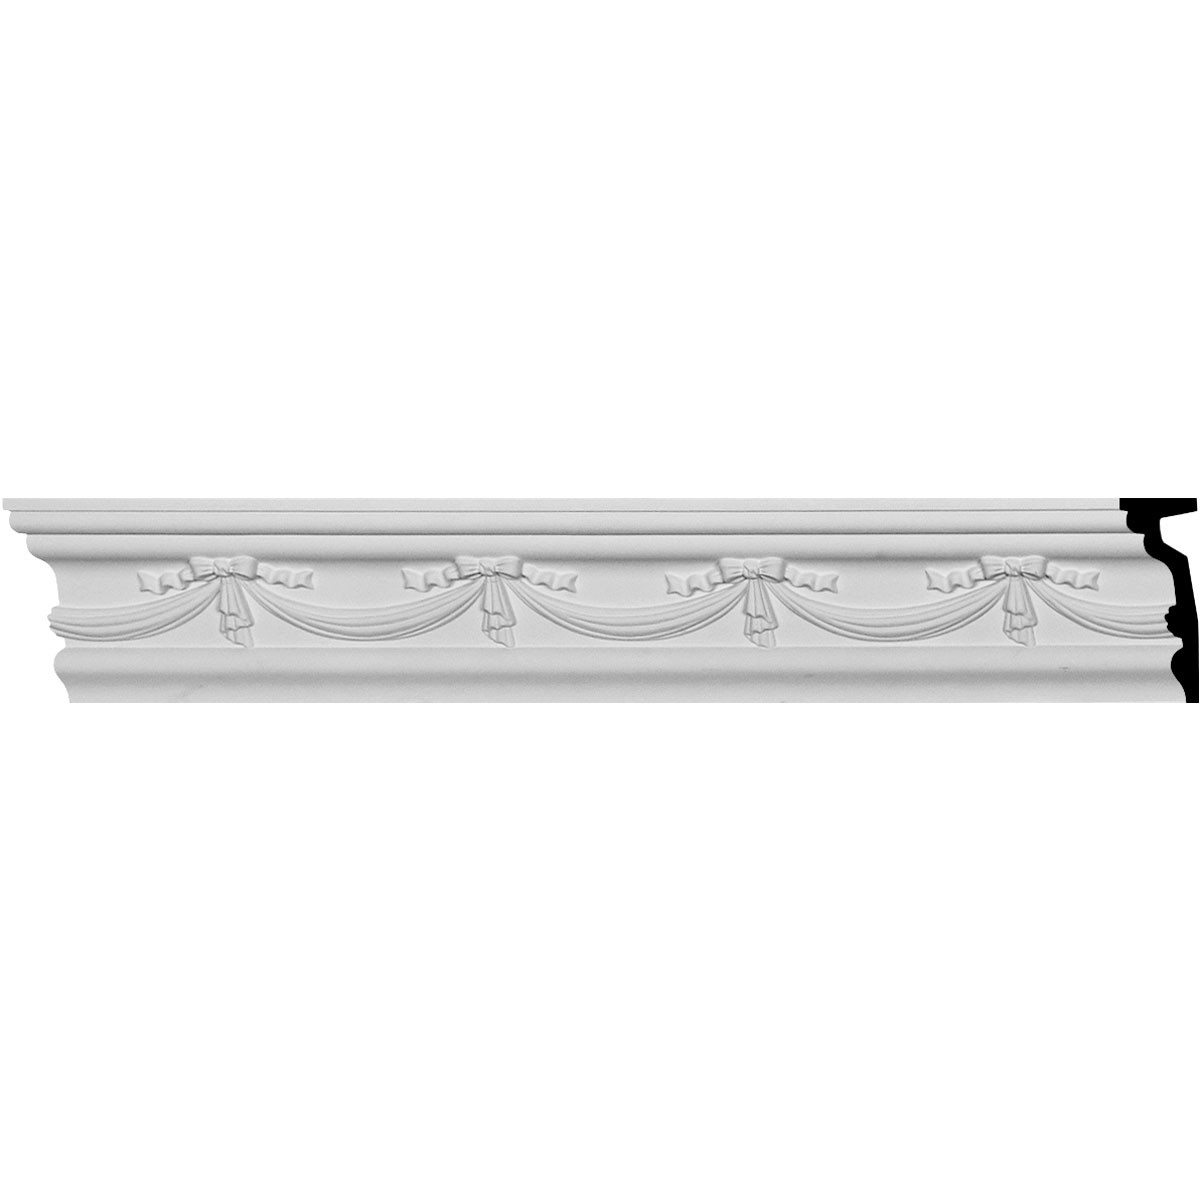 "EM-CHA05X02FE - 4 1/2""H x 1 3/4""P x 94 1/2""L Federal Chair Rail"